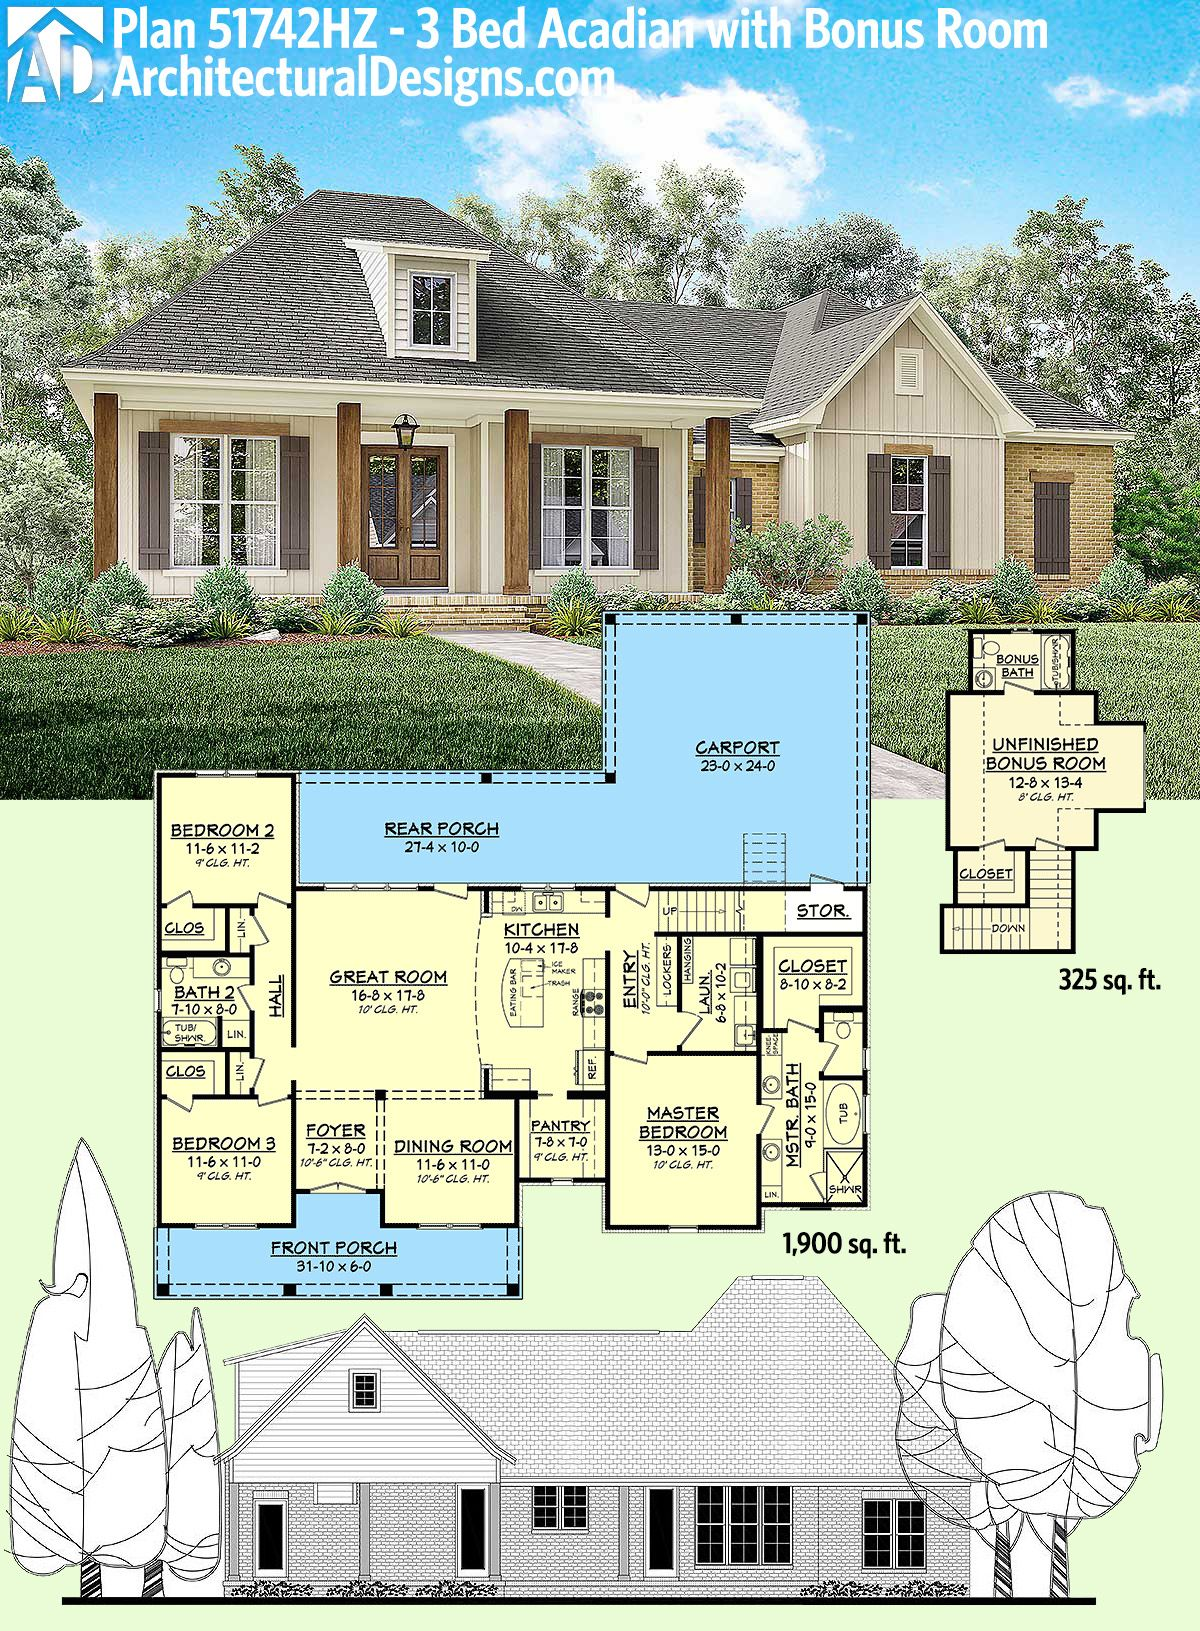 Plan 51742hz 3 bed acadian home plan with bonus over for Three bedroom house plans with bonus room